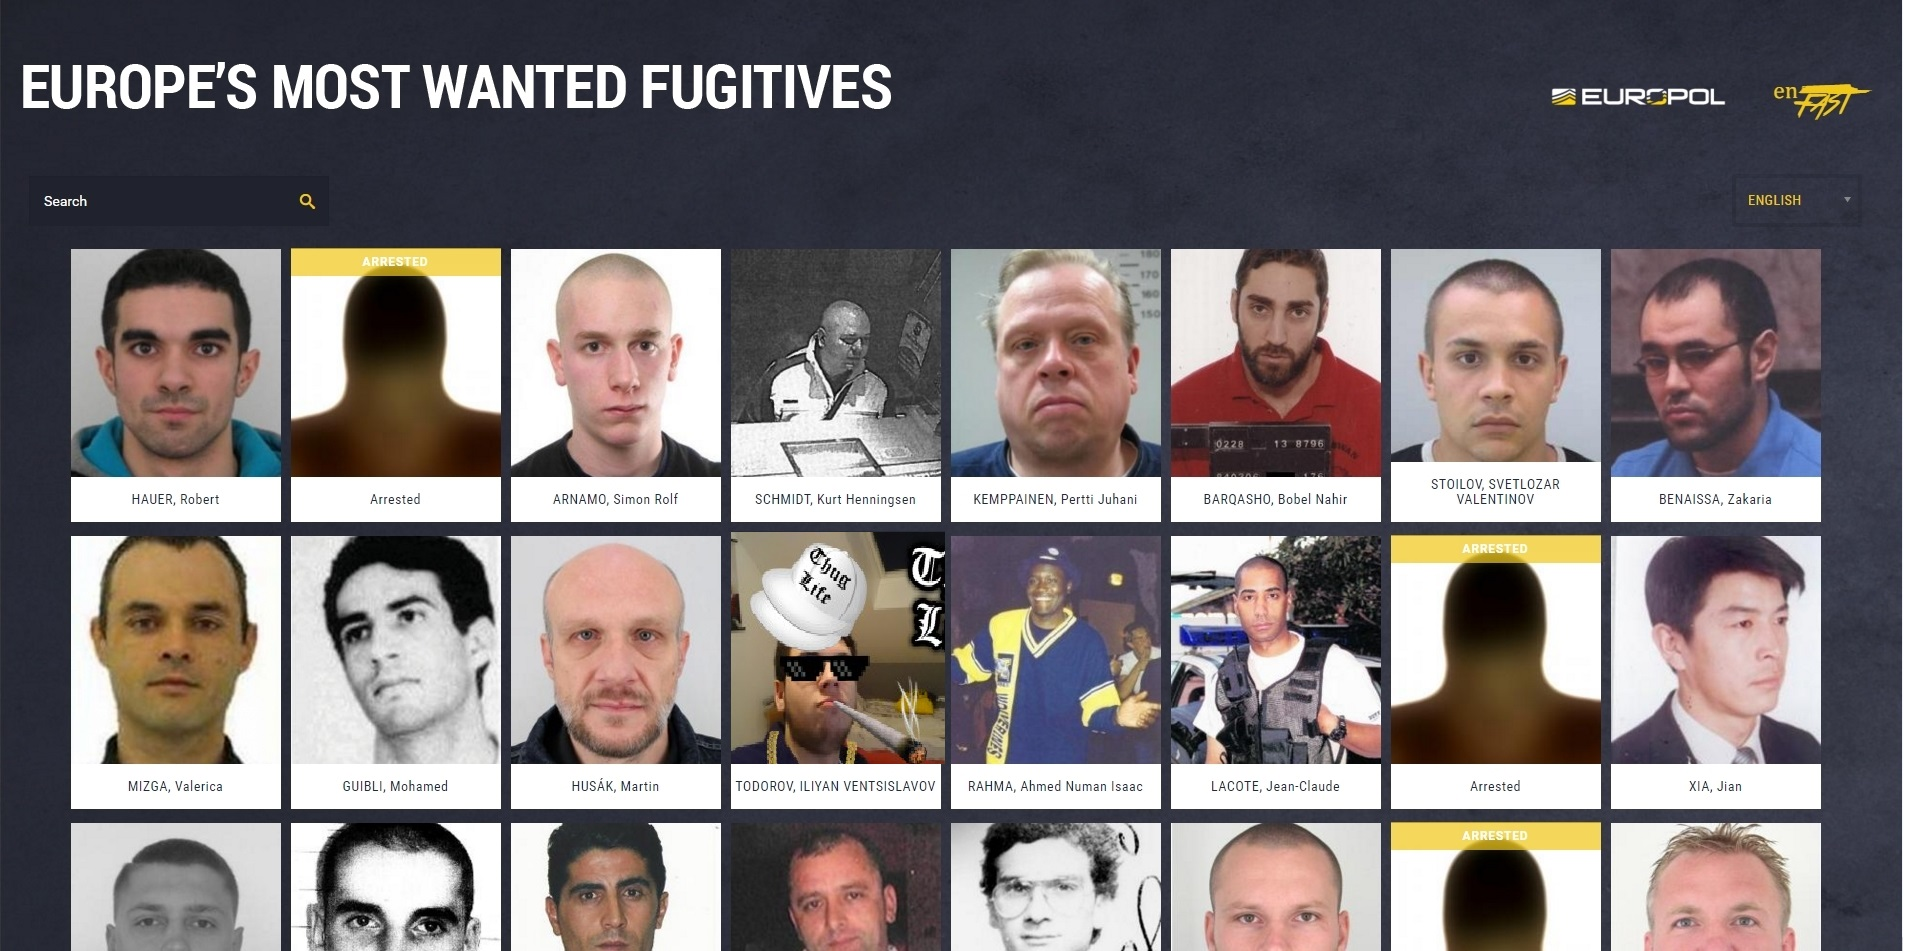 Europe's Most Wanted Fugitives by abcol2 on DeviantArt